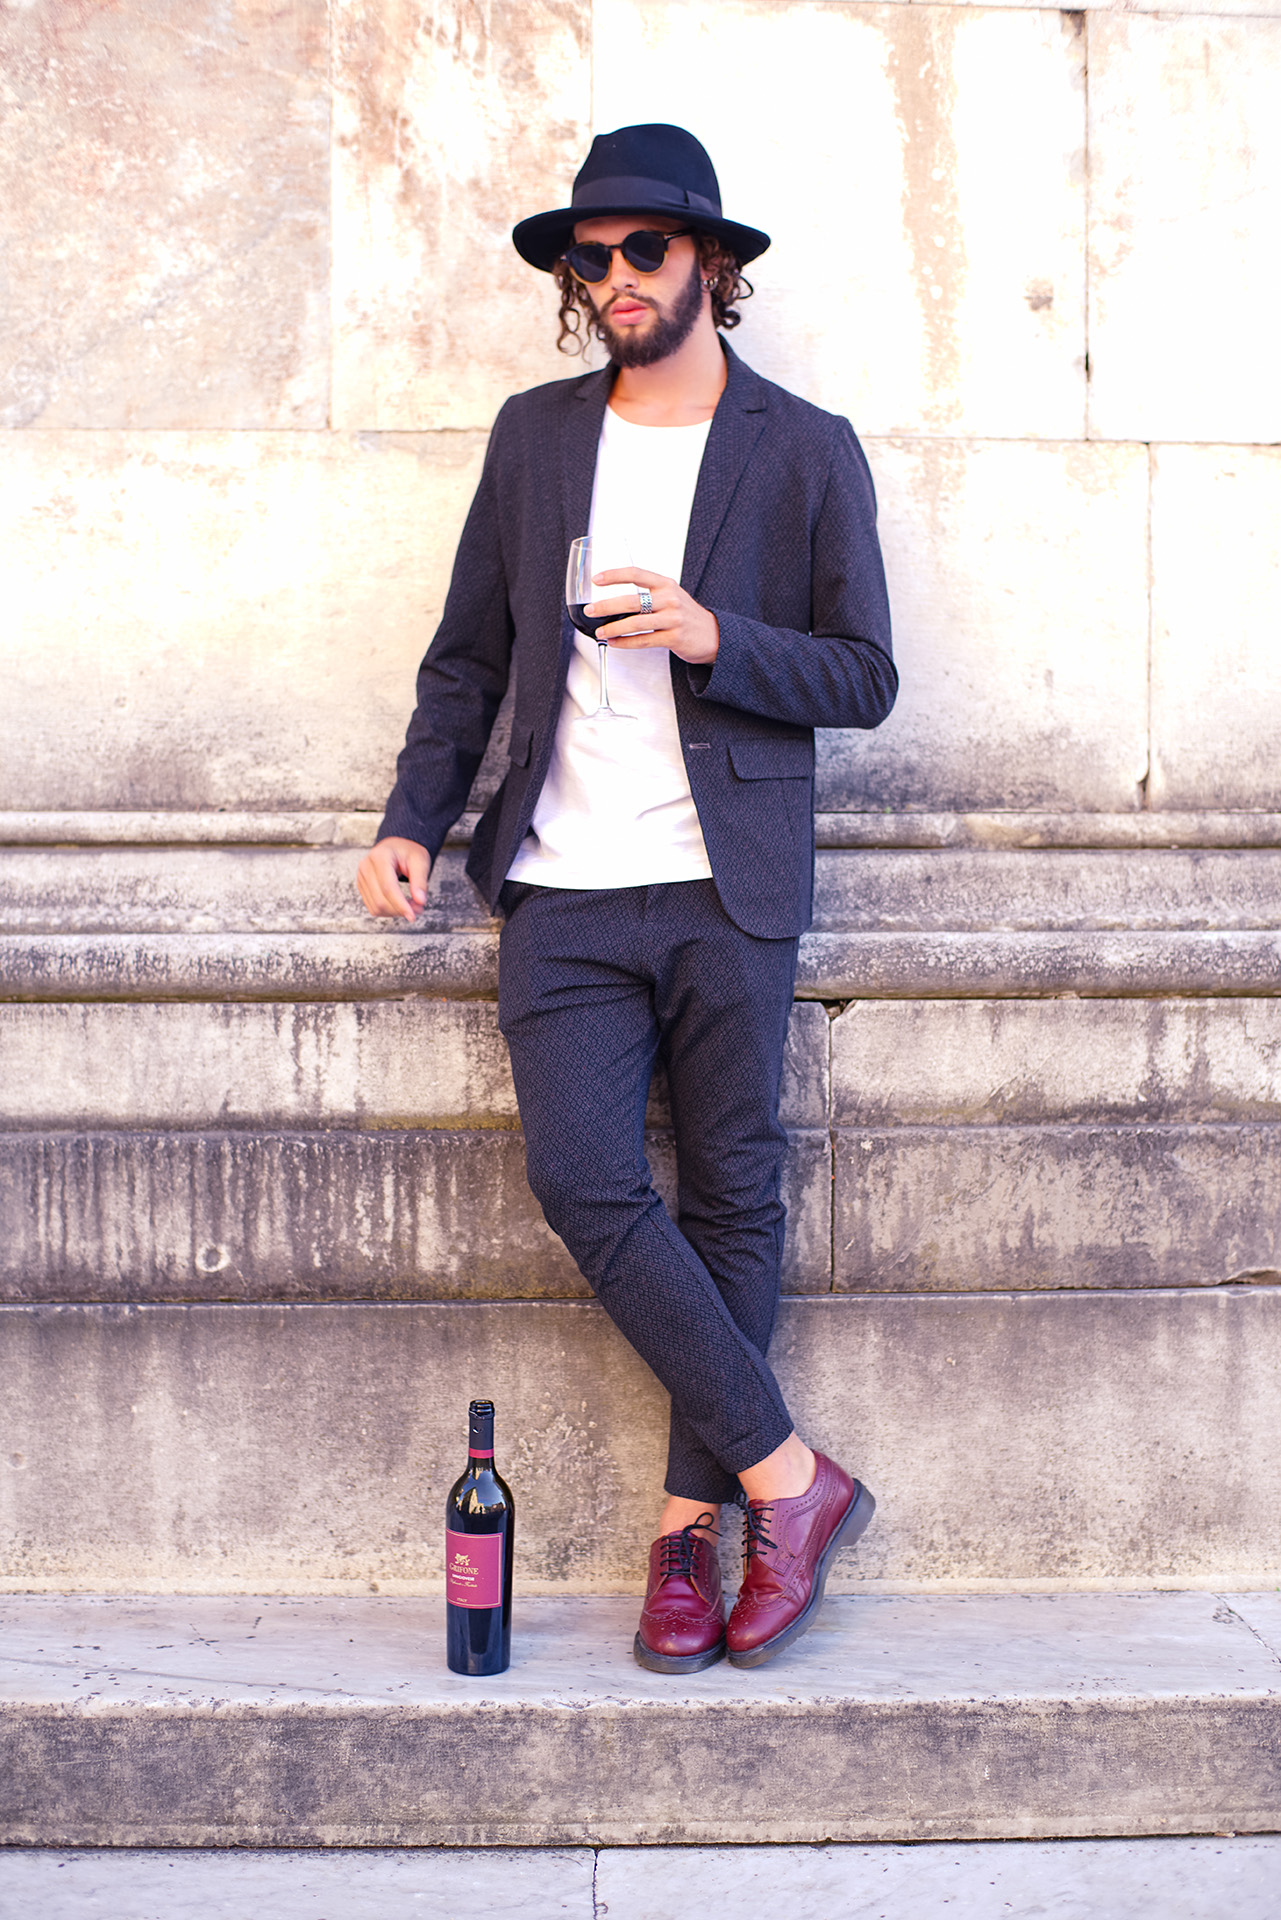 what means for BEING STYLED WITH AN HAT #grifonewine